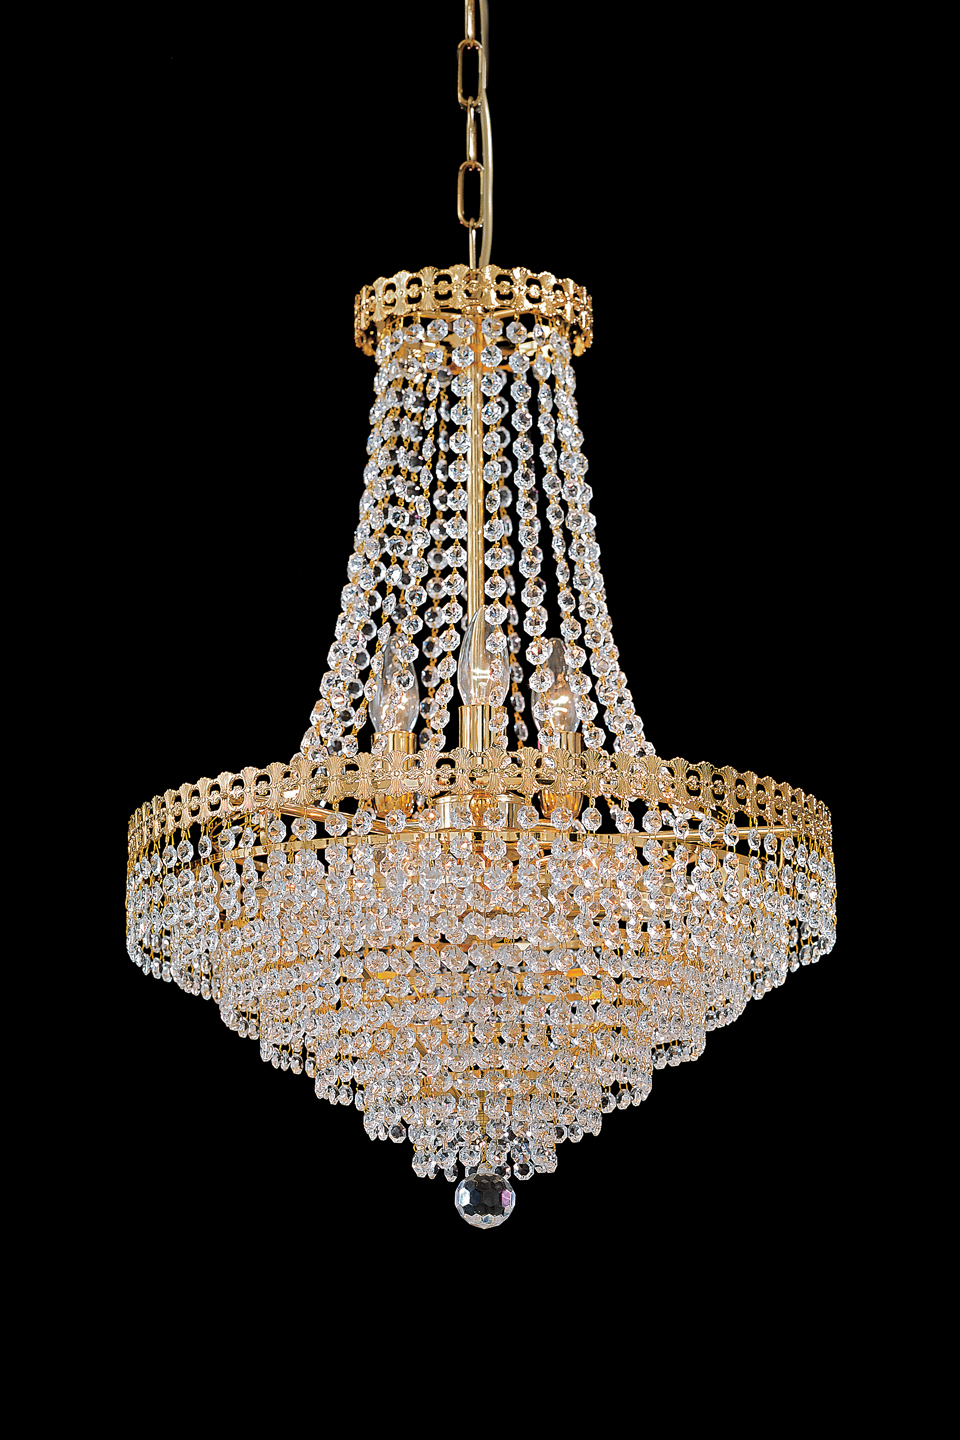 Gold And Crystal Chandelier 10 Lights